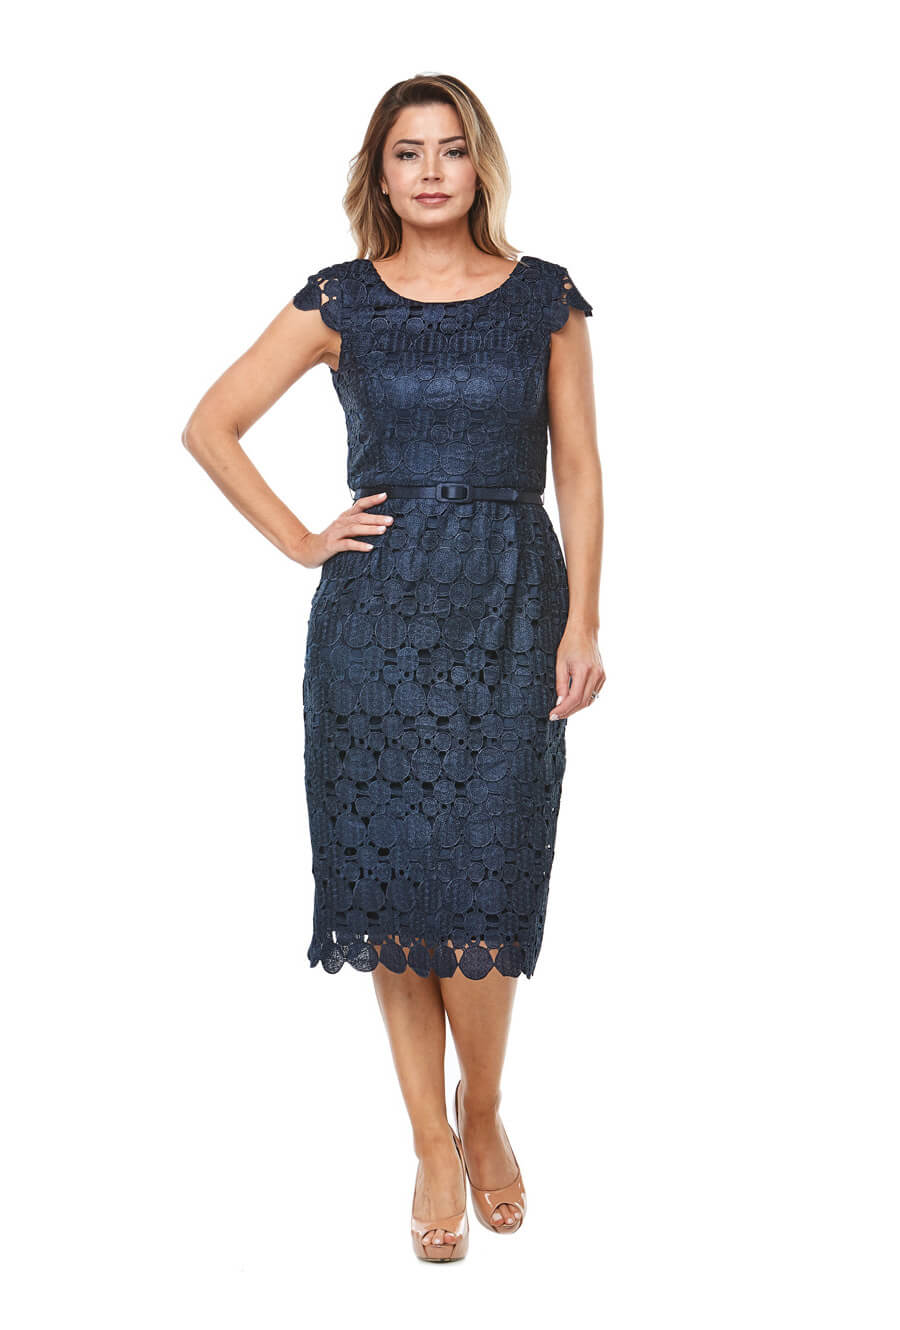 Mid length embroidered dress with cap sleeve, ornamental trim hem and matching belt